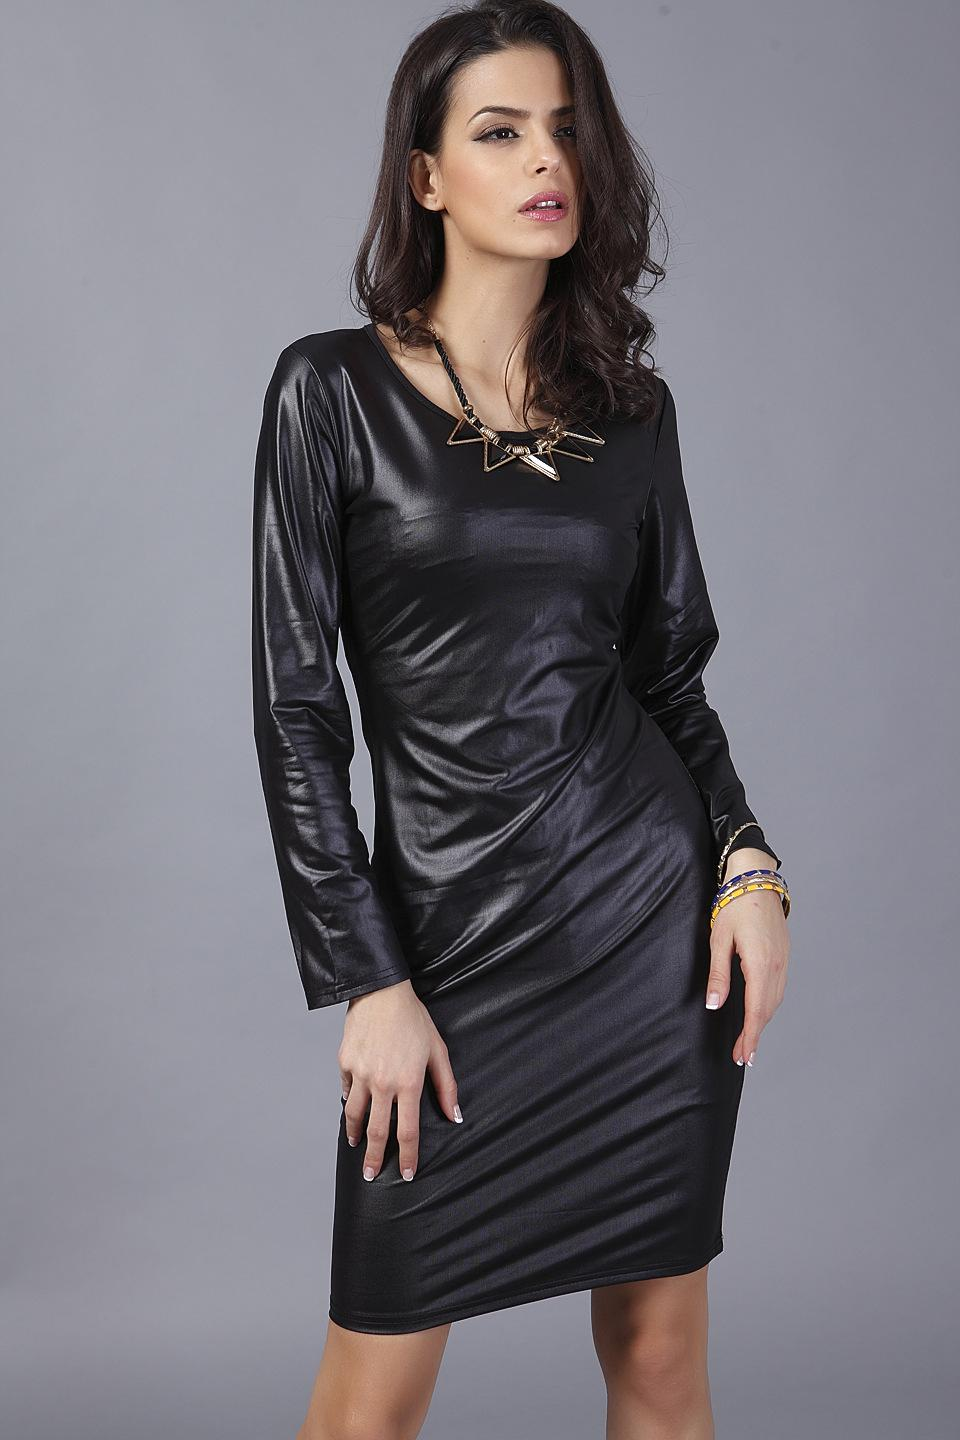 Women Sexy Leather Dress Full Sleeve V Neck One Piece Dress Lady ...